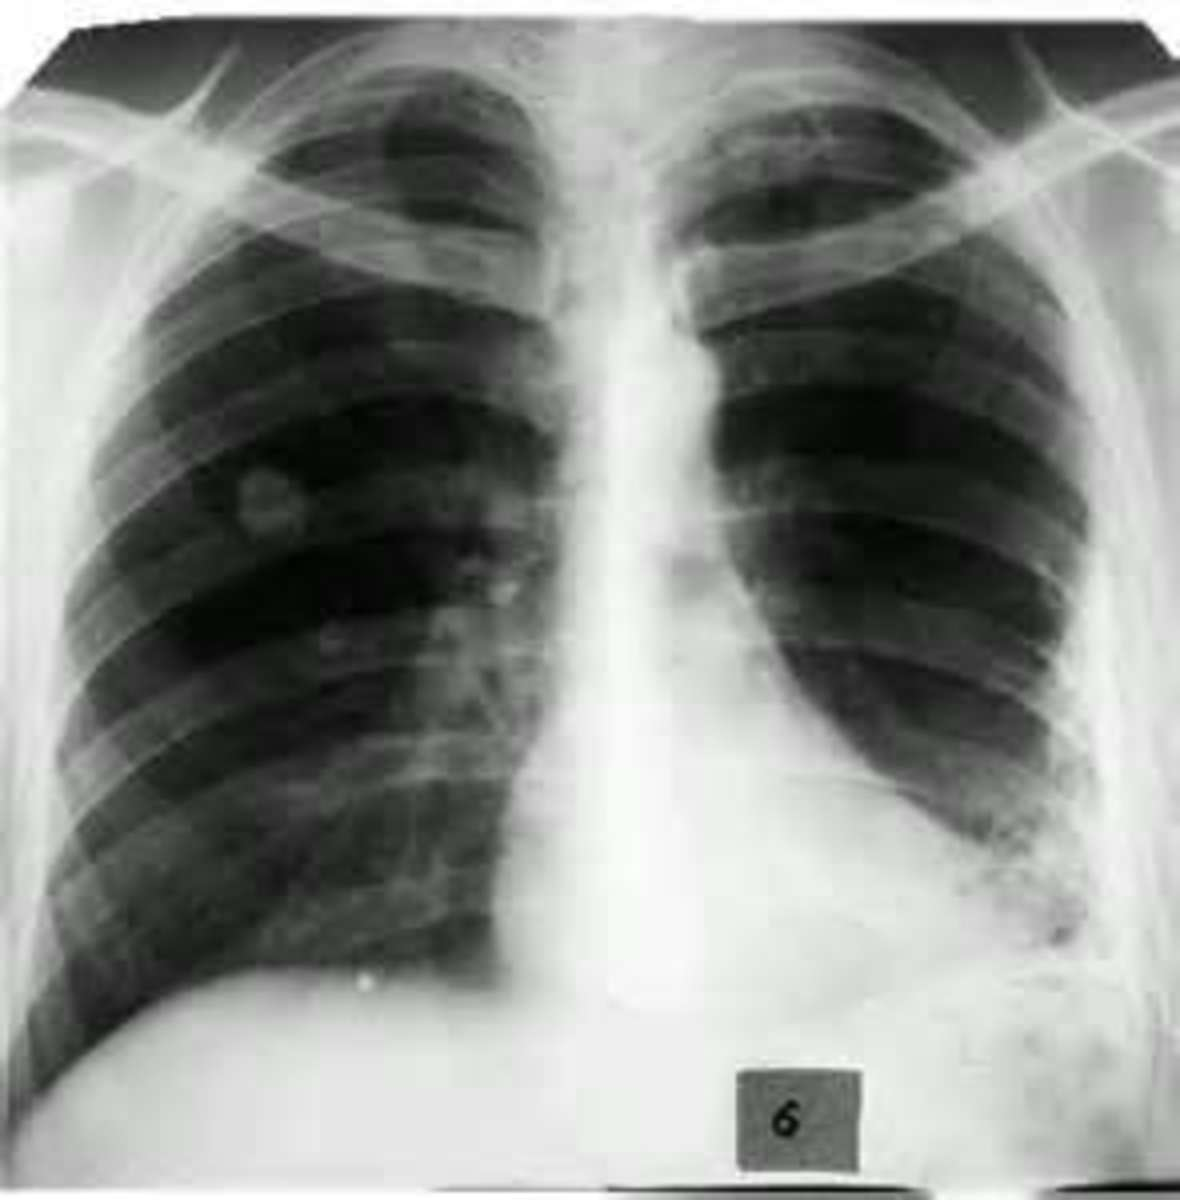 An X-ray of an individual suffering from pleurisy or the inflammation of the lining of the lungs.